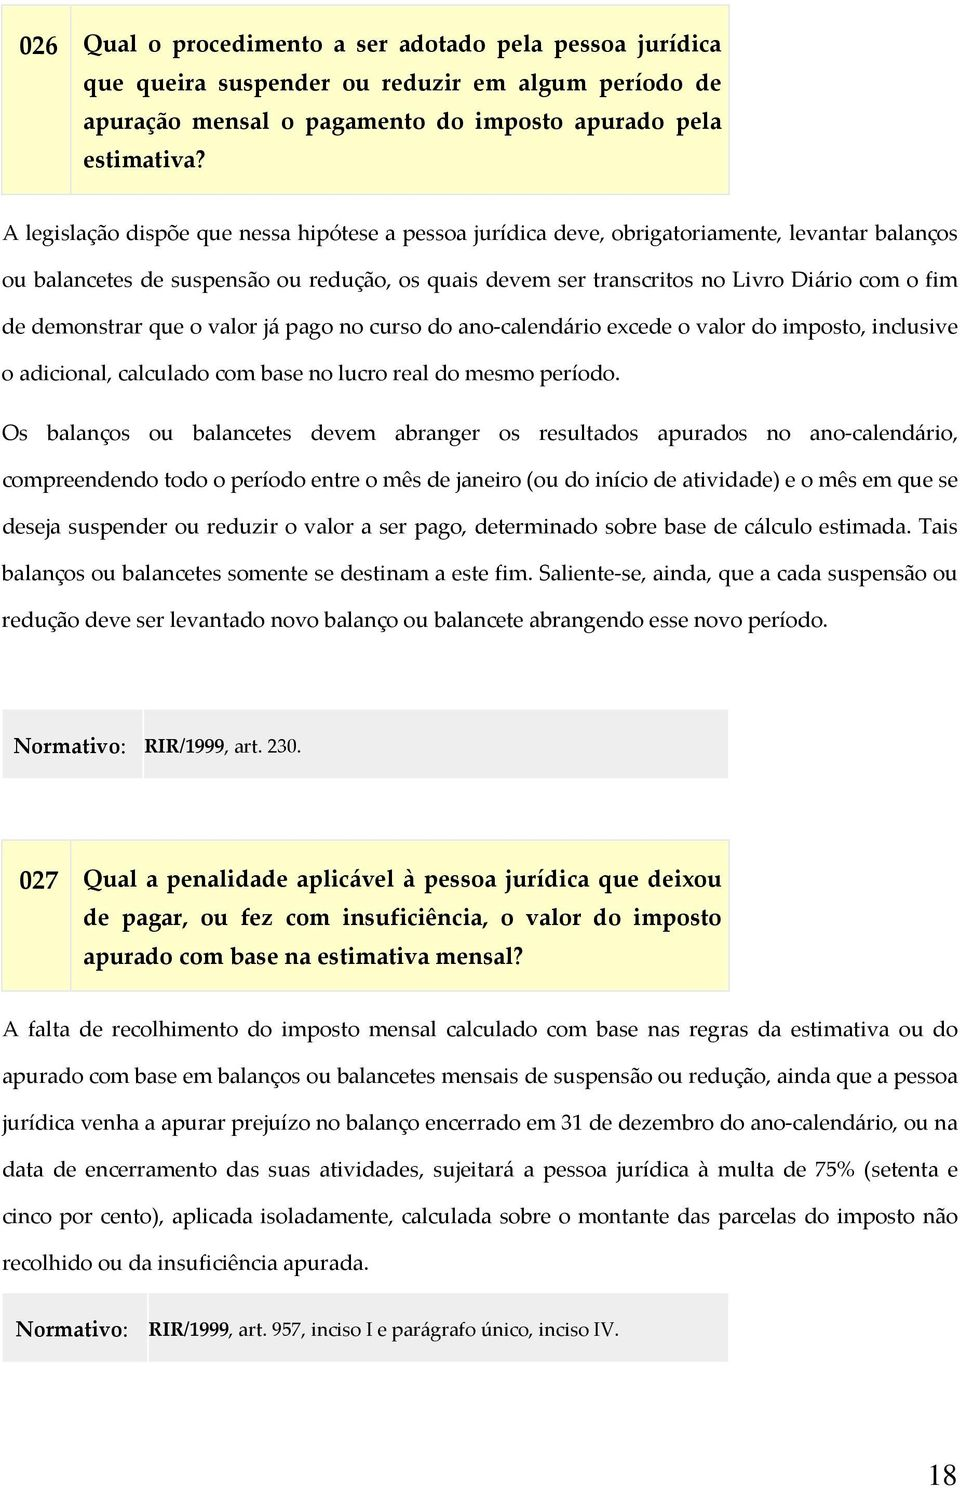 demonstrar que o valor já pago no curso do ano calendário excede o valor do imposto, inclusive o adicional, calculado com base no lucro real do mesmo período.